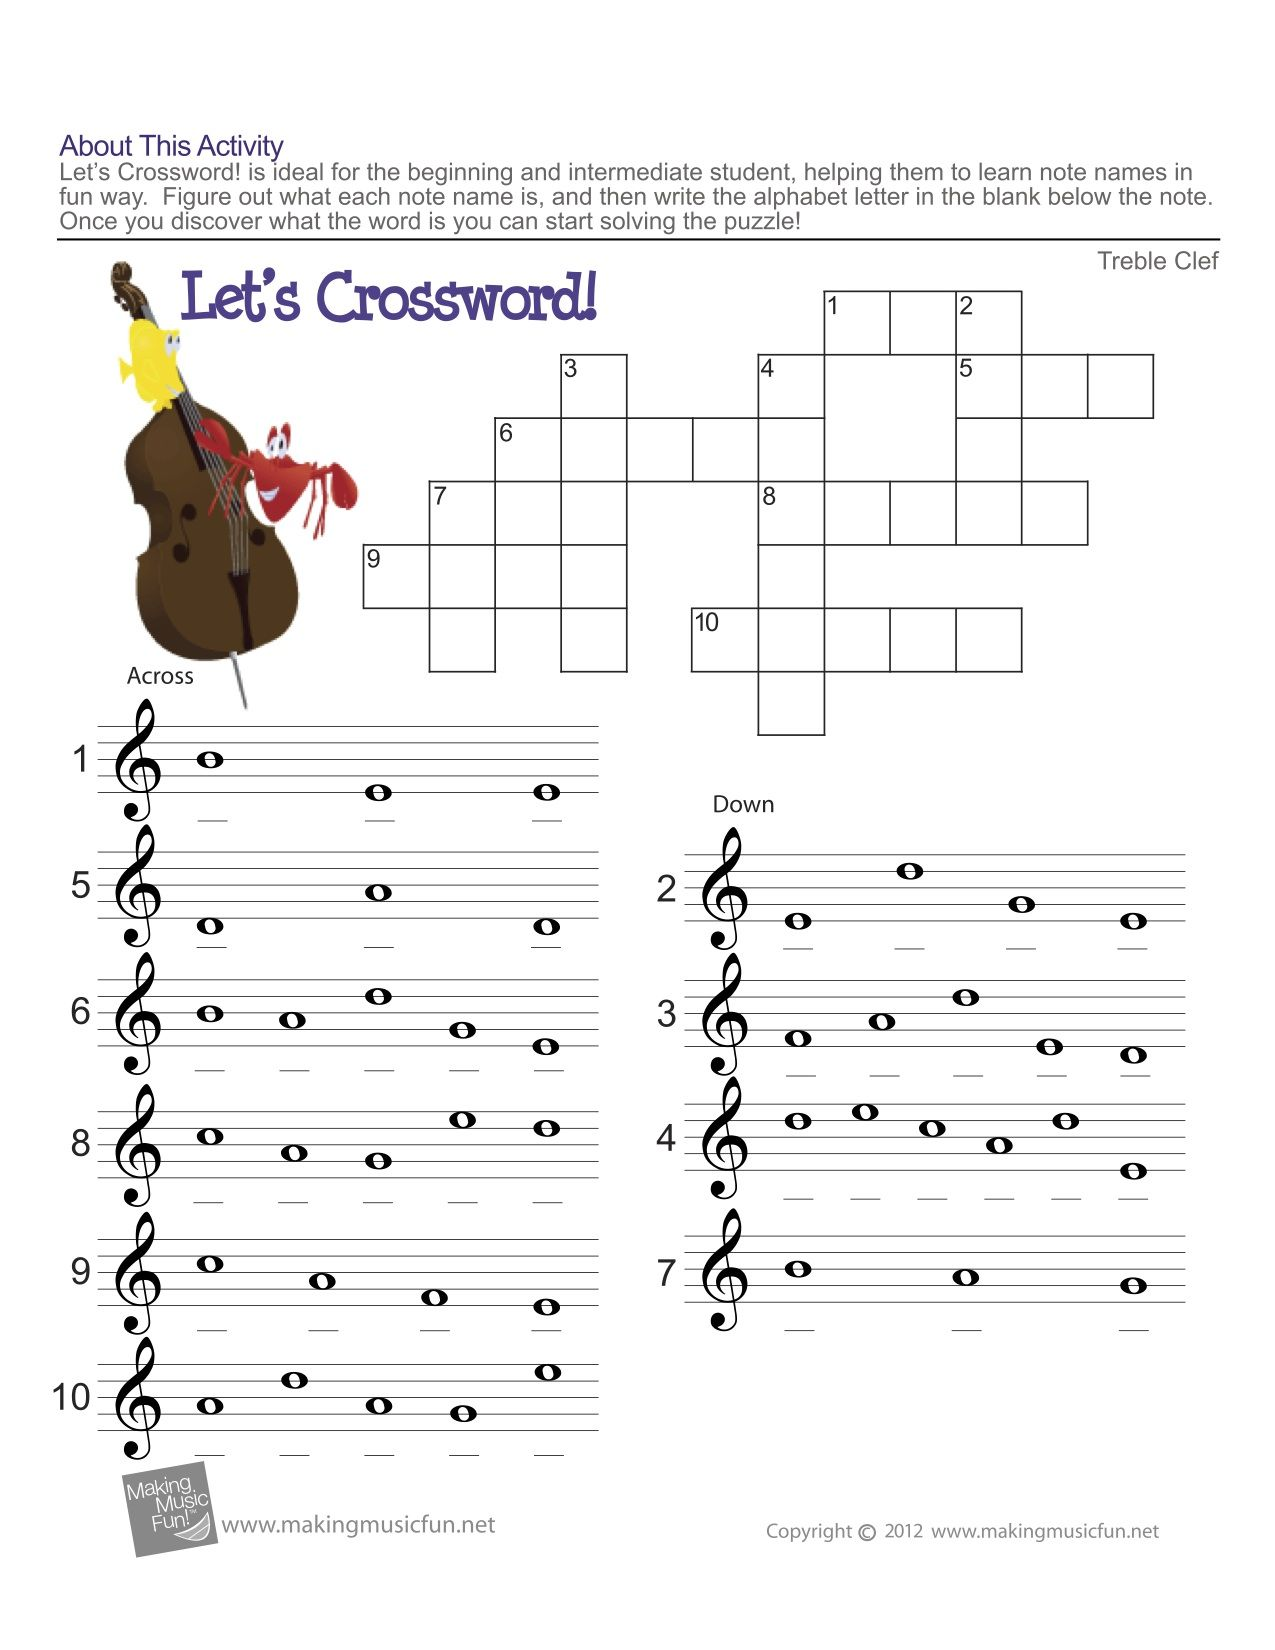 worksheet Note Name Worksheets treble clef fun note reading easy music theory for middle school reading